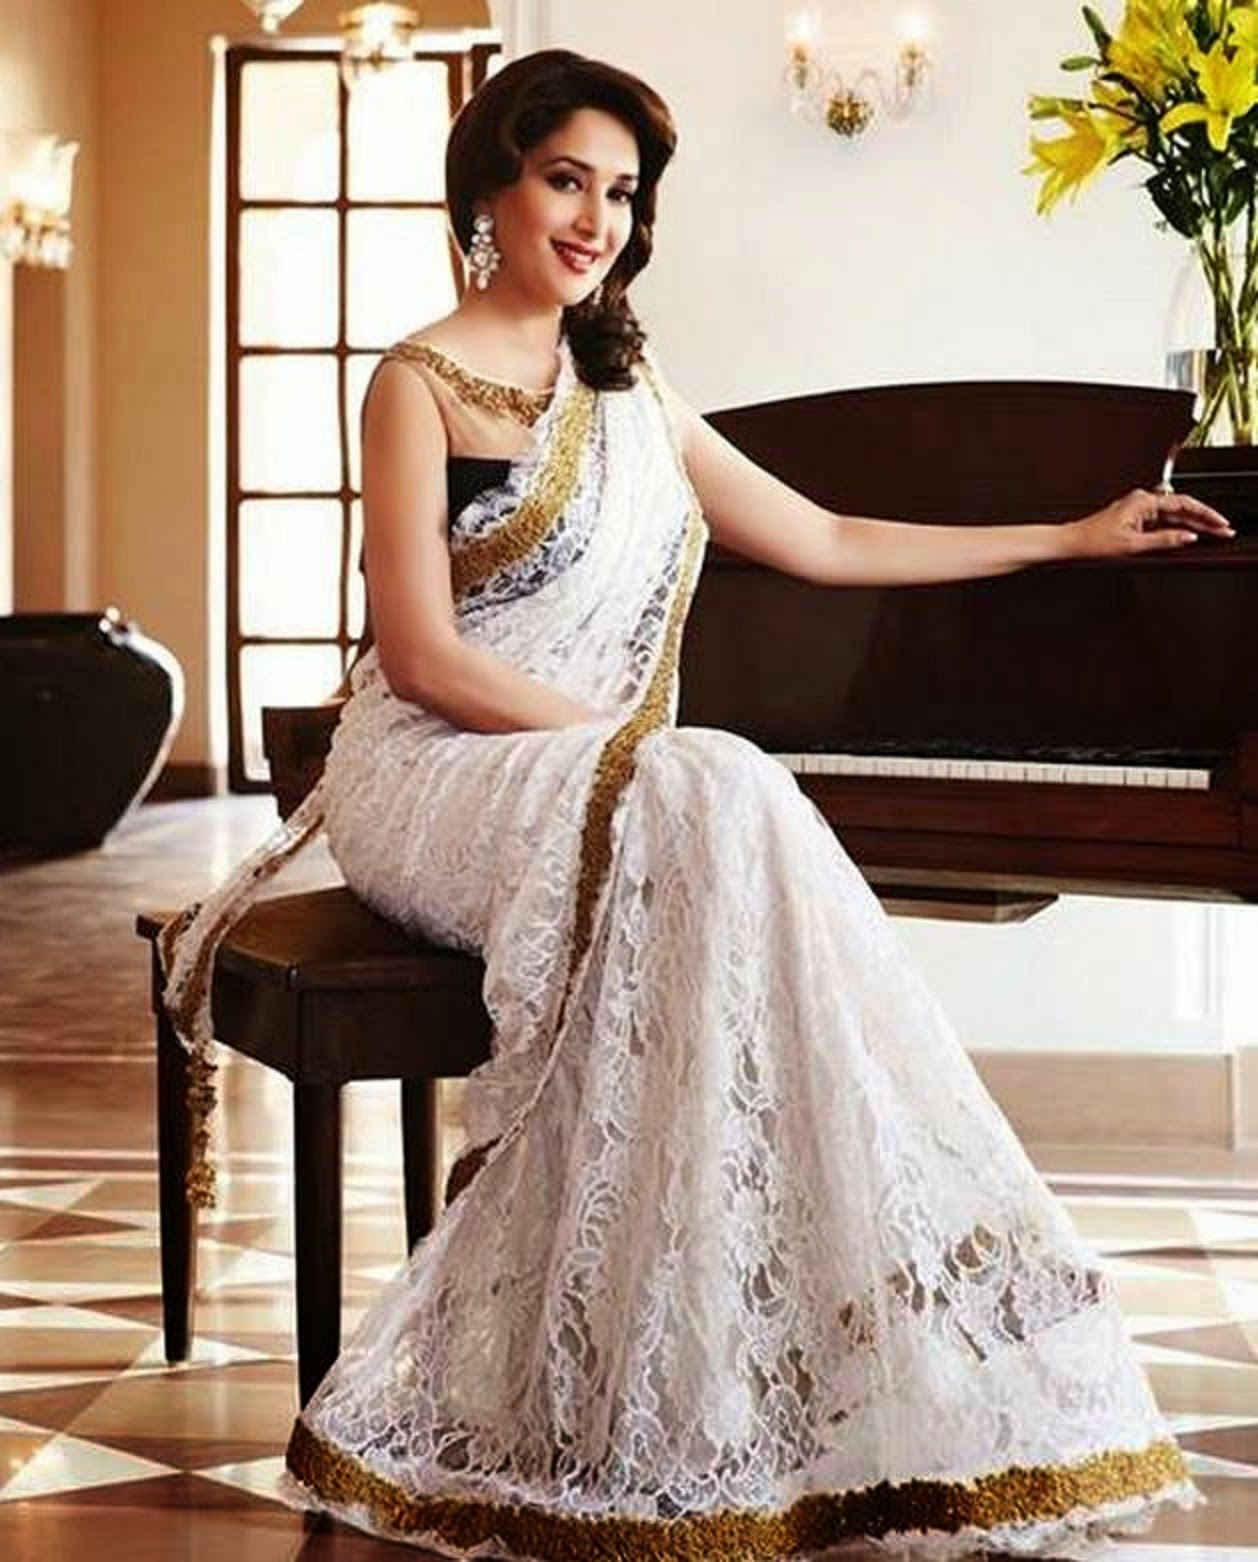 Wallpaper download madhuri dixit - Best Madhuri Dixit Wallpapers And Pics Photoshotoh 1258 1562